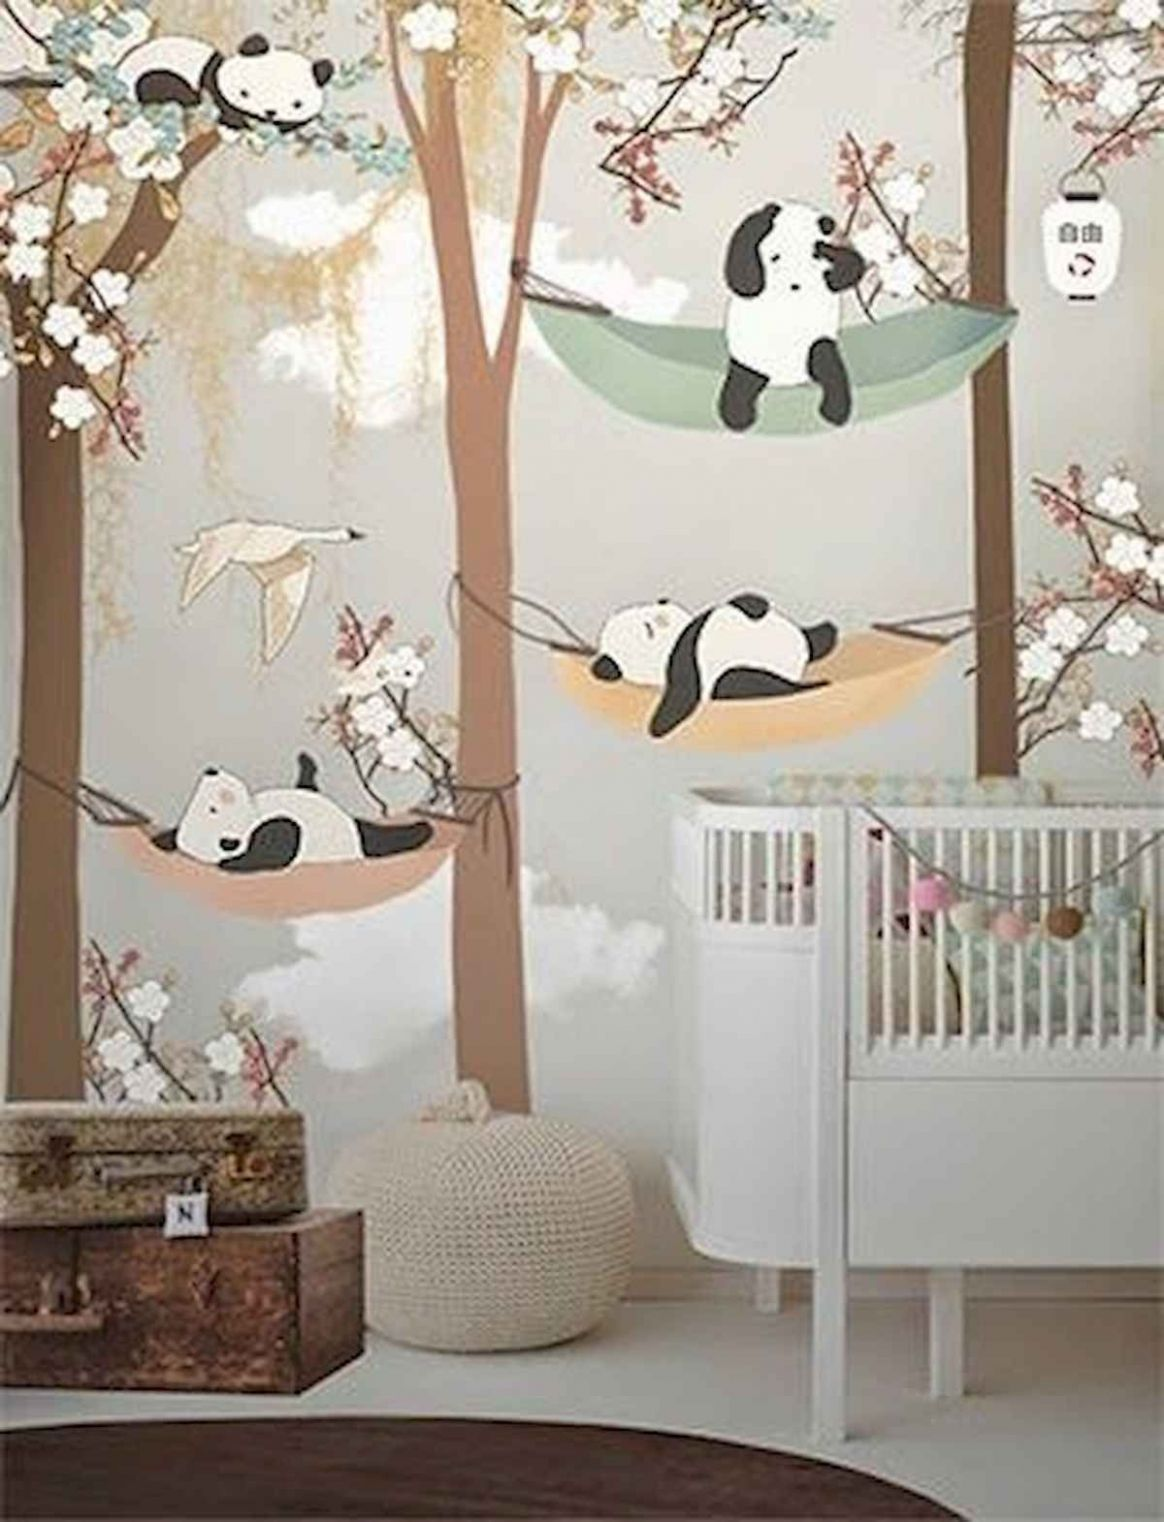 12 Adorable Nursery Room Ideas For Baby Boy nursery #room #12 ..